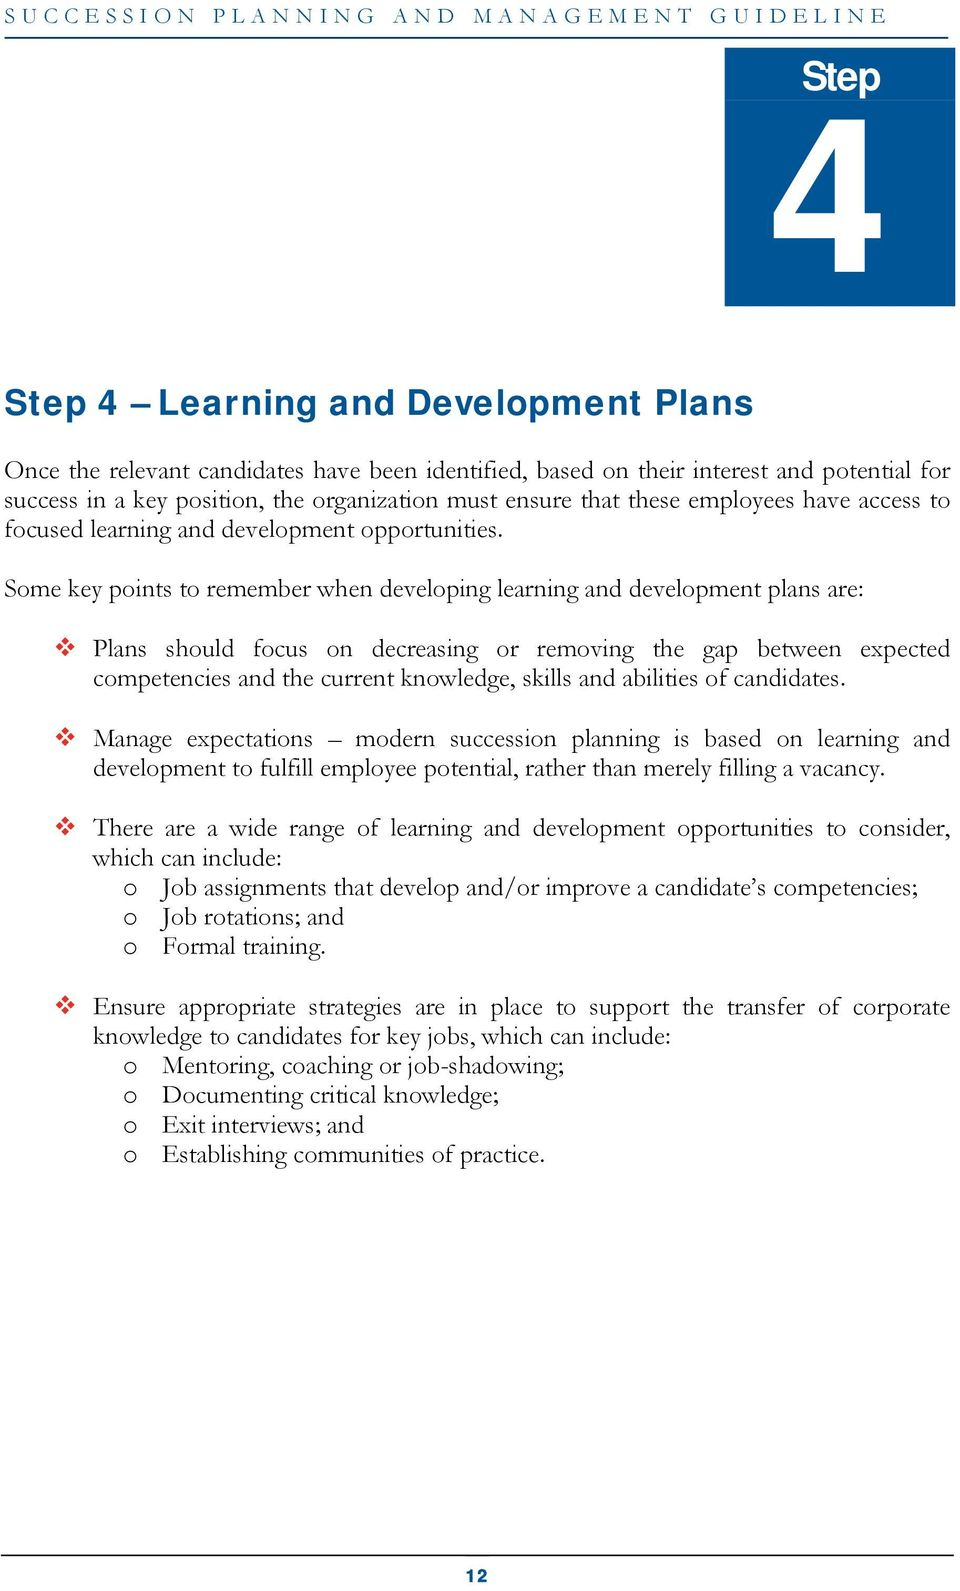 Some key points to remember when developing learning and development plans are: Plans should focus on decreasing or removing the gap between expected competencies and the current knowledge, skills